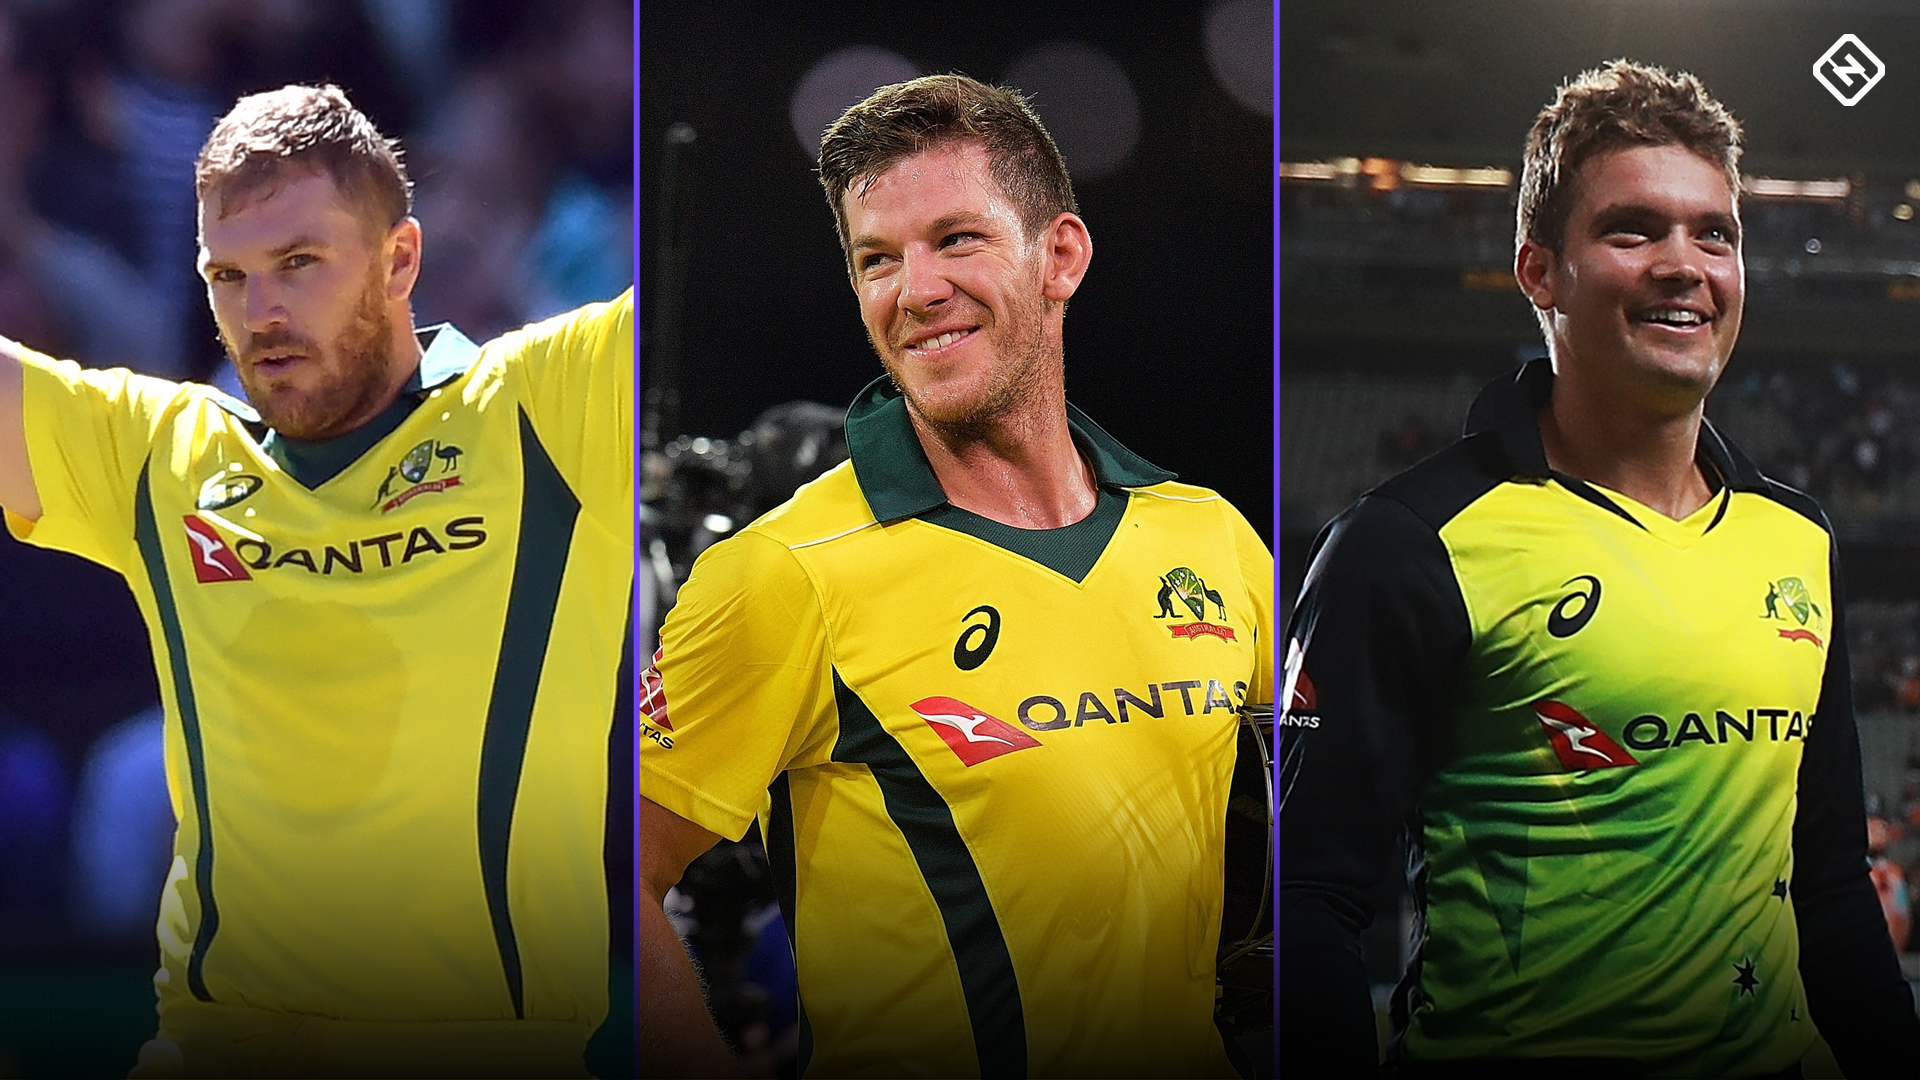 Paine to captain Australia's ODI team in England